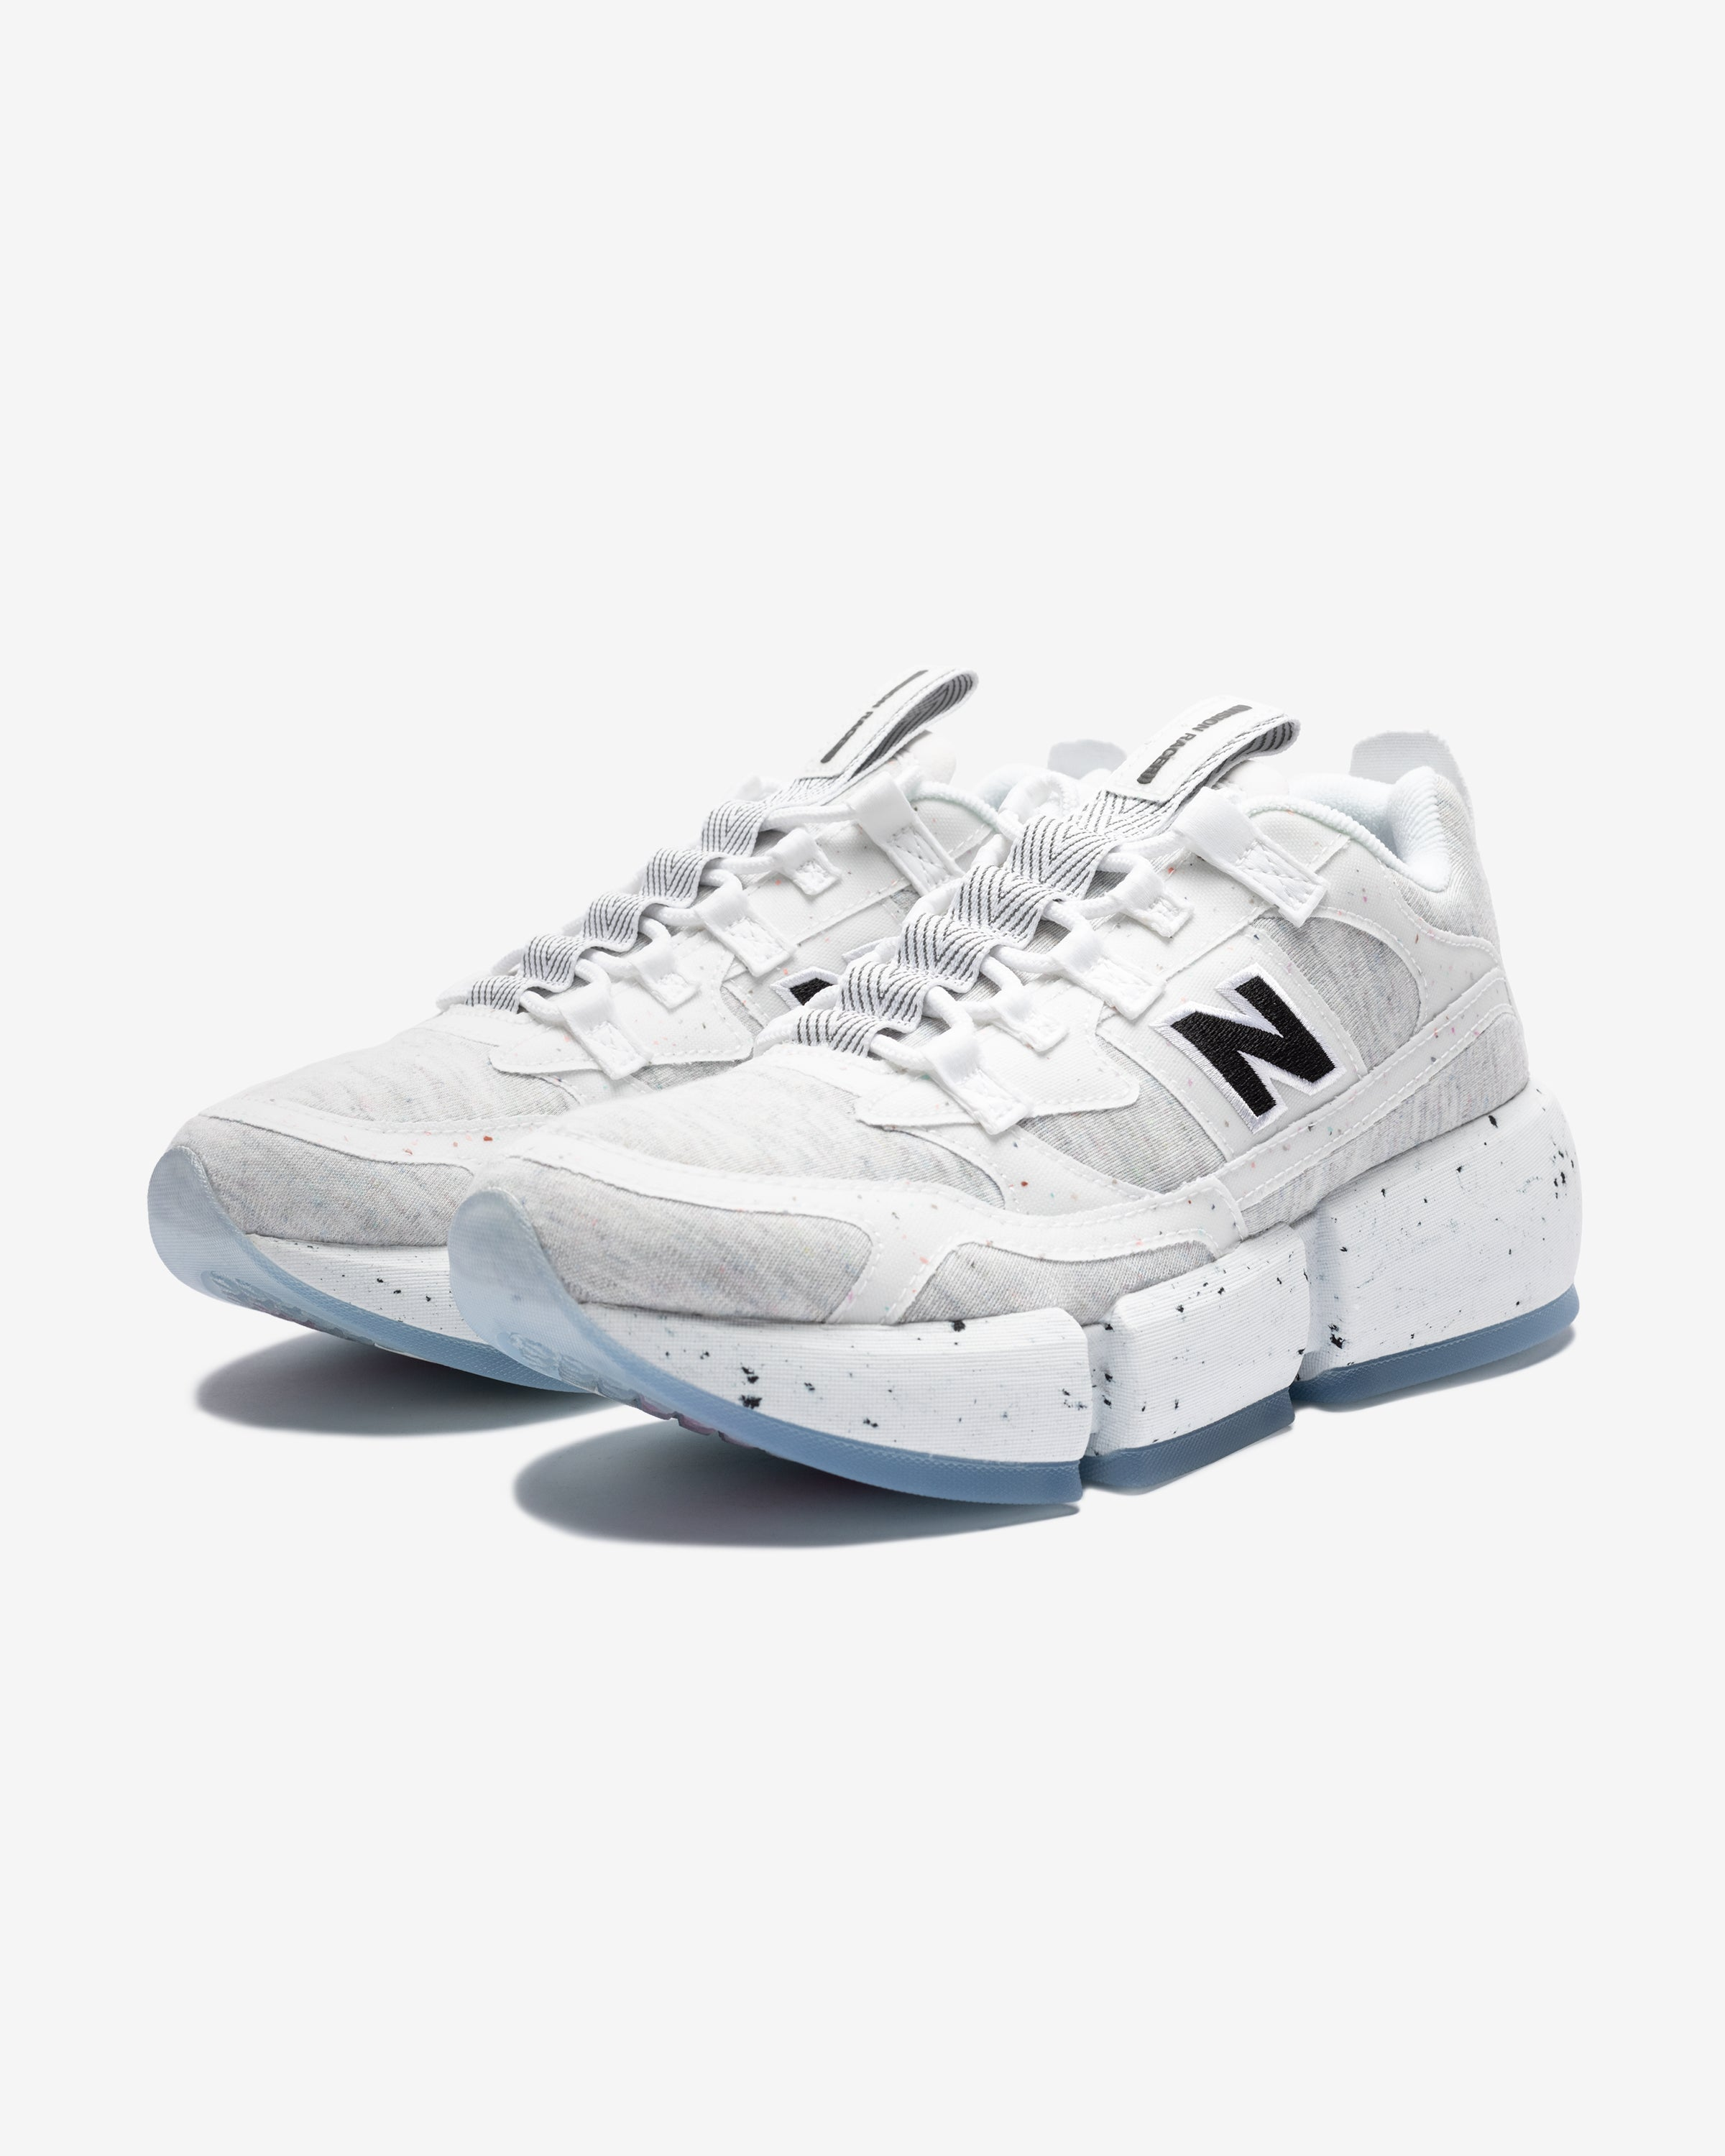 NEW BALANCE X JADEN SMITH VISION RACER - NATURAL